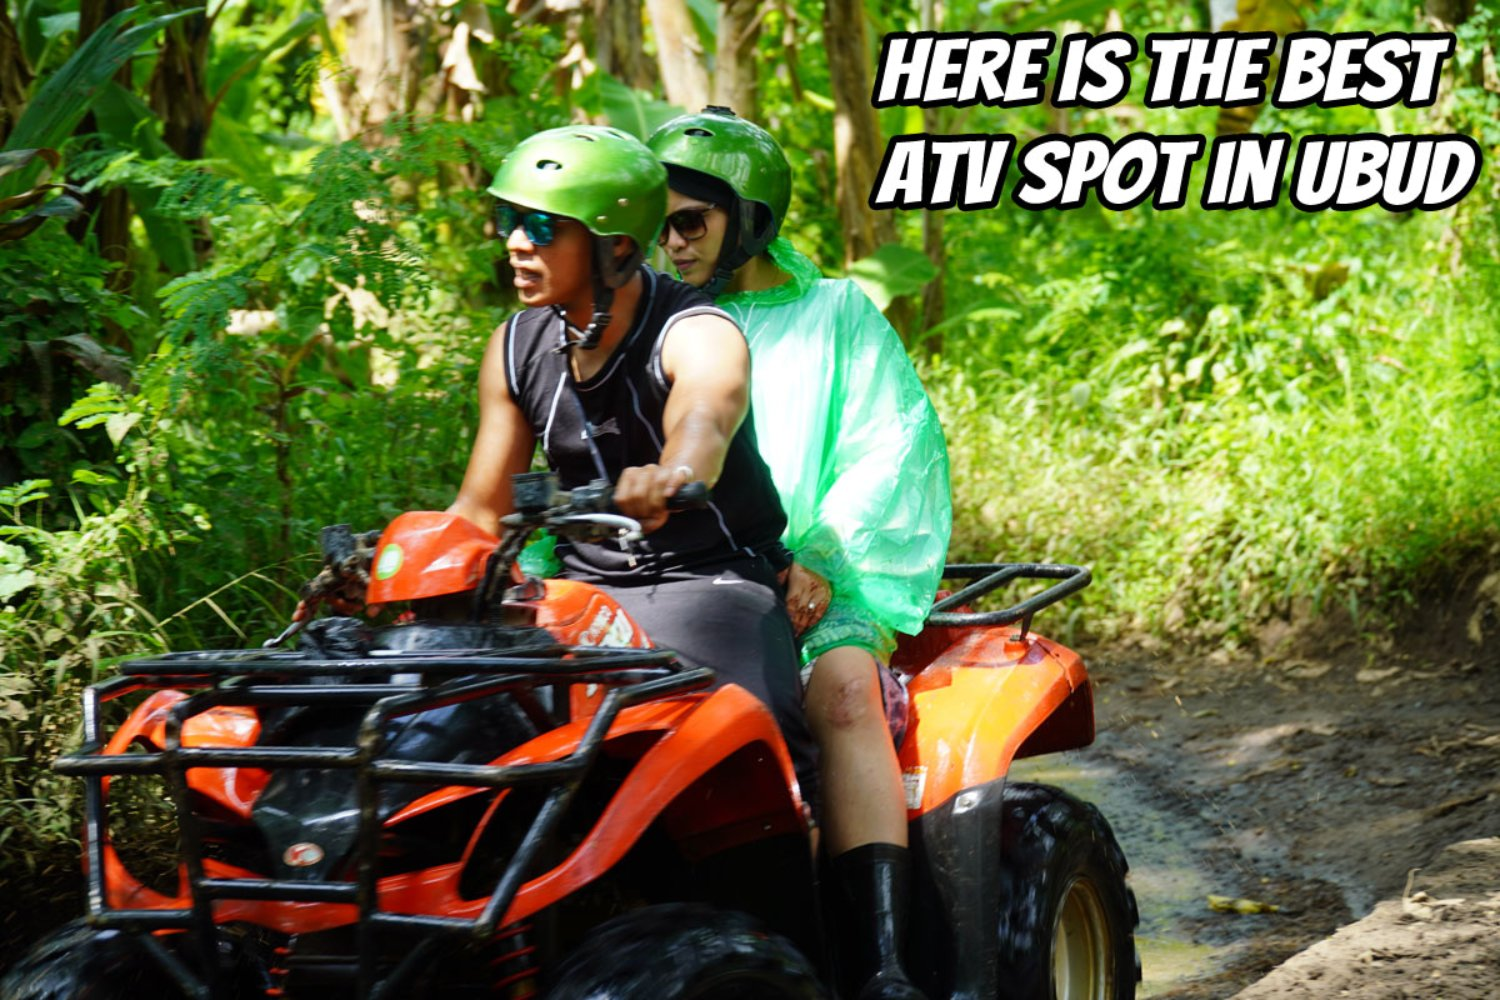 Here is The ATV Adventure Spot in Ubud with Unforgettable Tracks